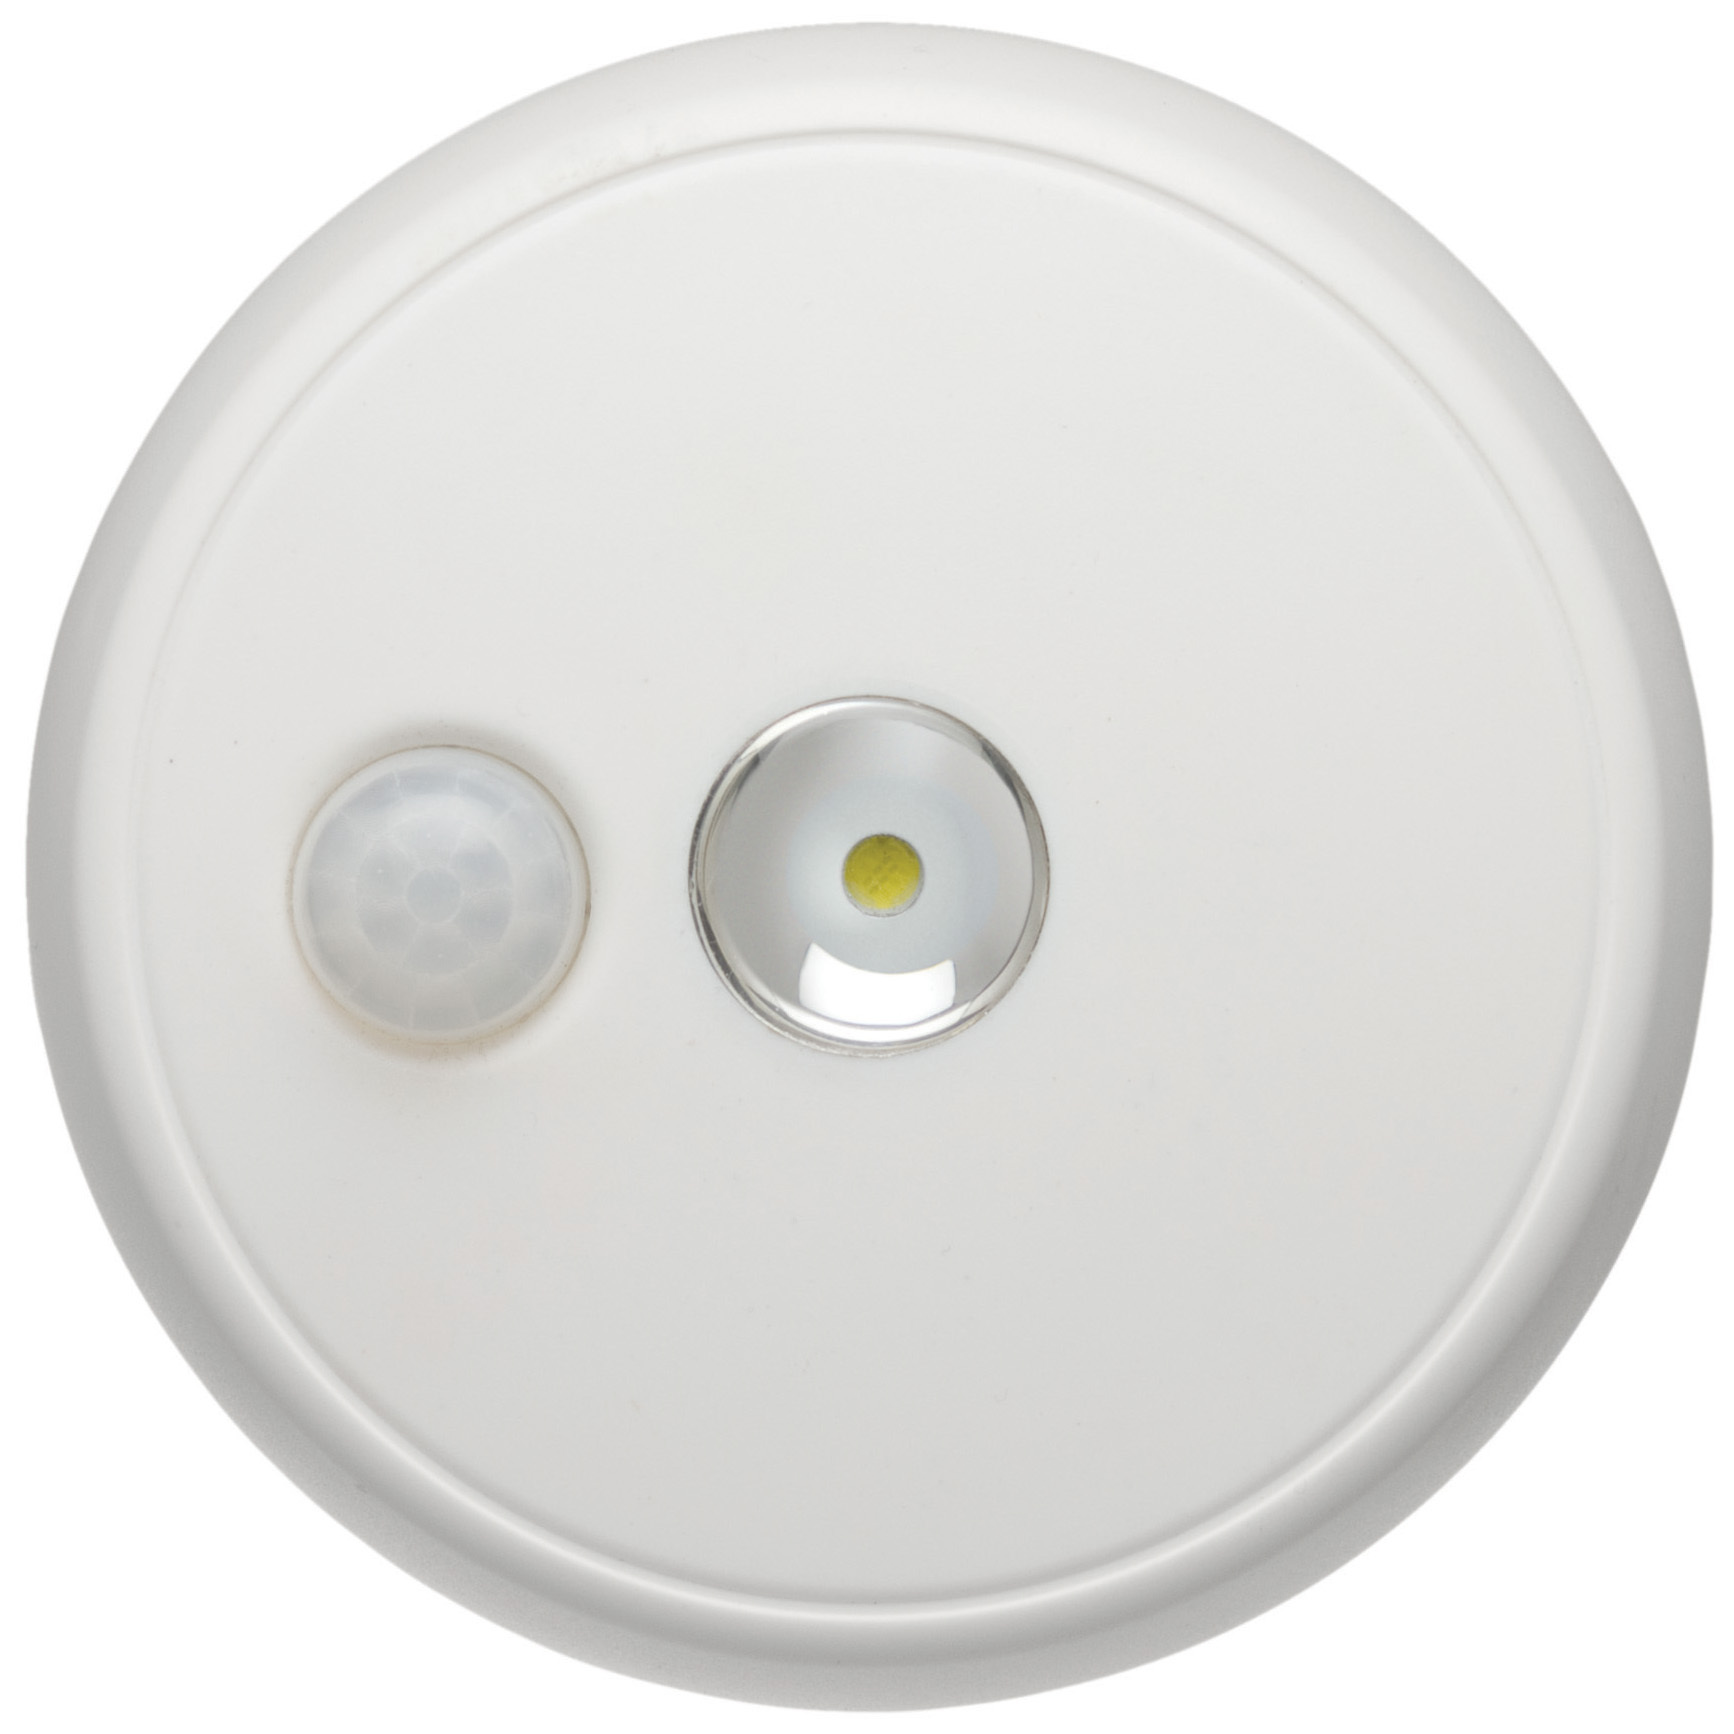 "Wireless Motion Sensor LED Ceiling Light. Energy-efficient lighting to keep your closet, shed, porch or attic well lit. No electrician needed! Bright light where you need it most! This Motion Sensor LED Ceiling Light mounts easily and without wiring. No electrician needed. Detects motion up to 20' away, so you can keep closets, sheds and attics well lit with 100-lumens of brightness! It's incredibly energy efficient, too. The high-quality LED bulb never needs replacing, and you'll get more than 36 hours of use with 1 set of batteries.Features:Durable housing is weather resistant for indoor or outdoor use Produces a bright 100 lumens Keeps areas up to 260 sq. ft. well lit Turns on when motion is detected up to 20' away 30-second auto shutoff feature conserves battery life High-quality LED bulb never needs replacing Wire-free installation is incredibly easy Runs on 3 C-cell batteries (not included) Measures 5 x 1 1/2 x 5""h. Order yours ONLINE today! - $24.99"